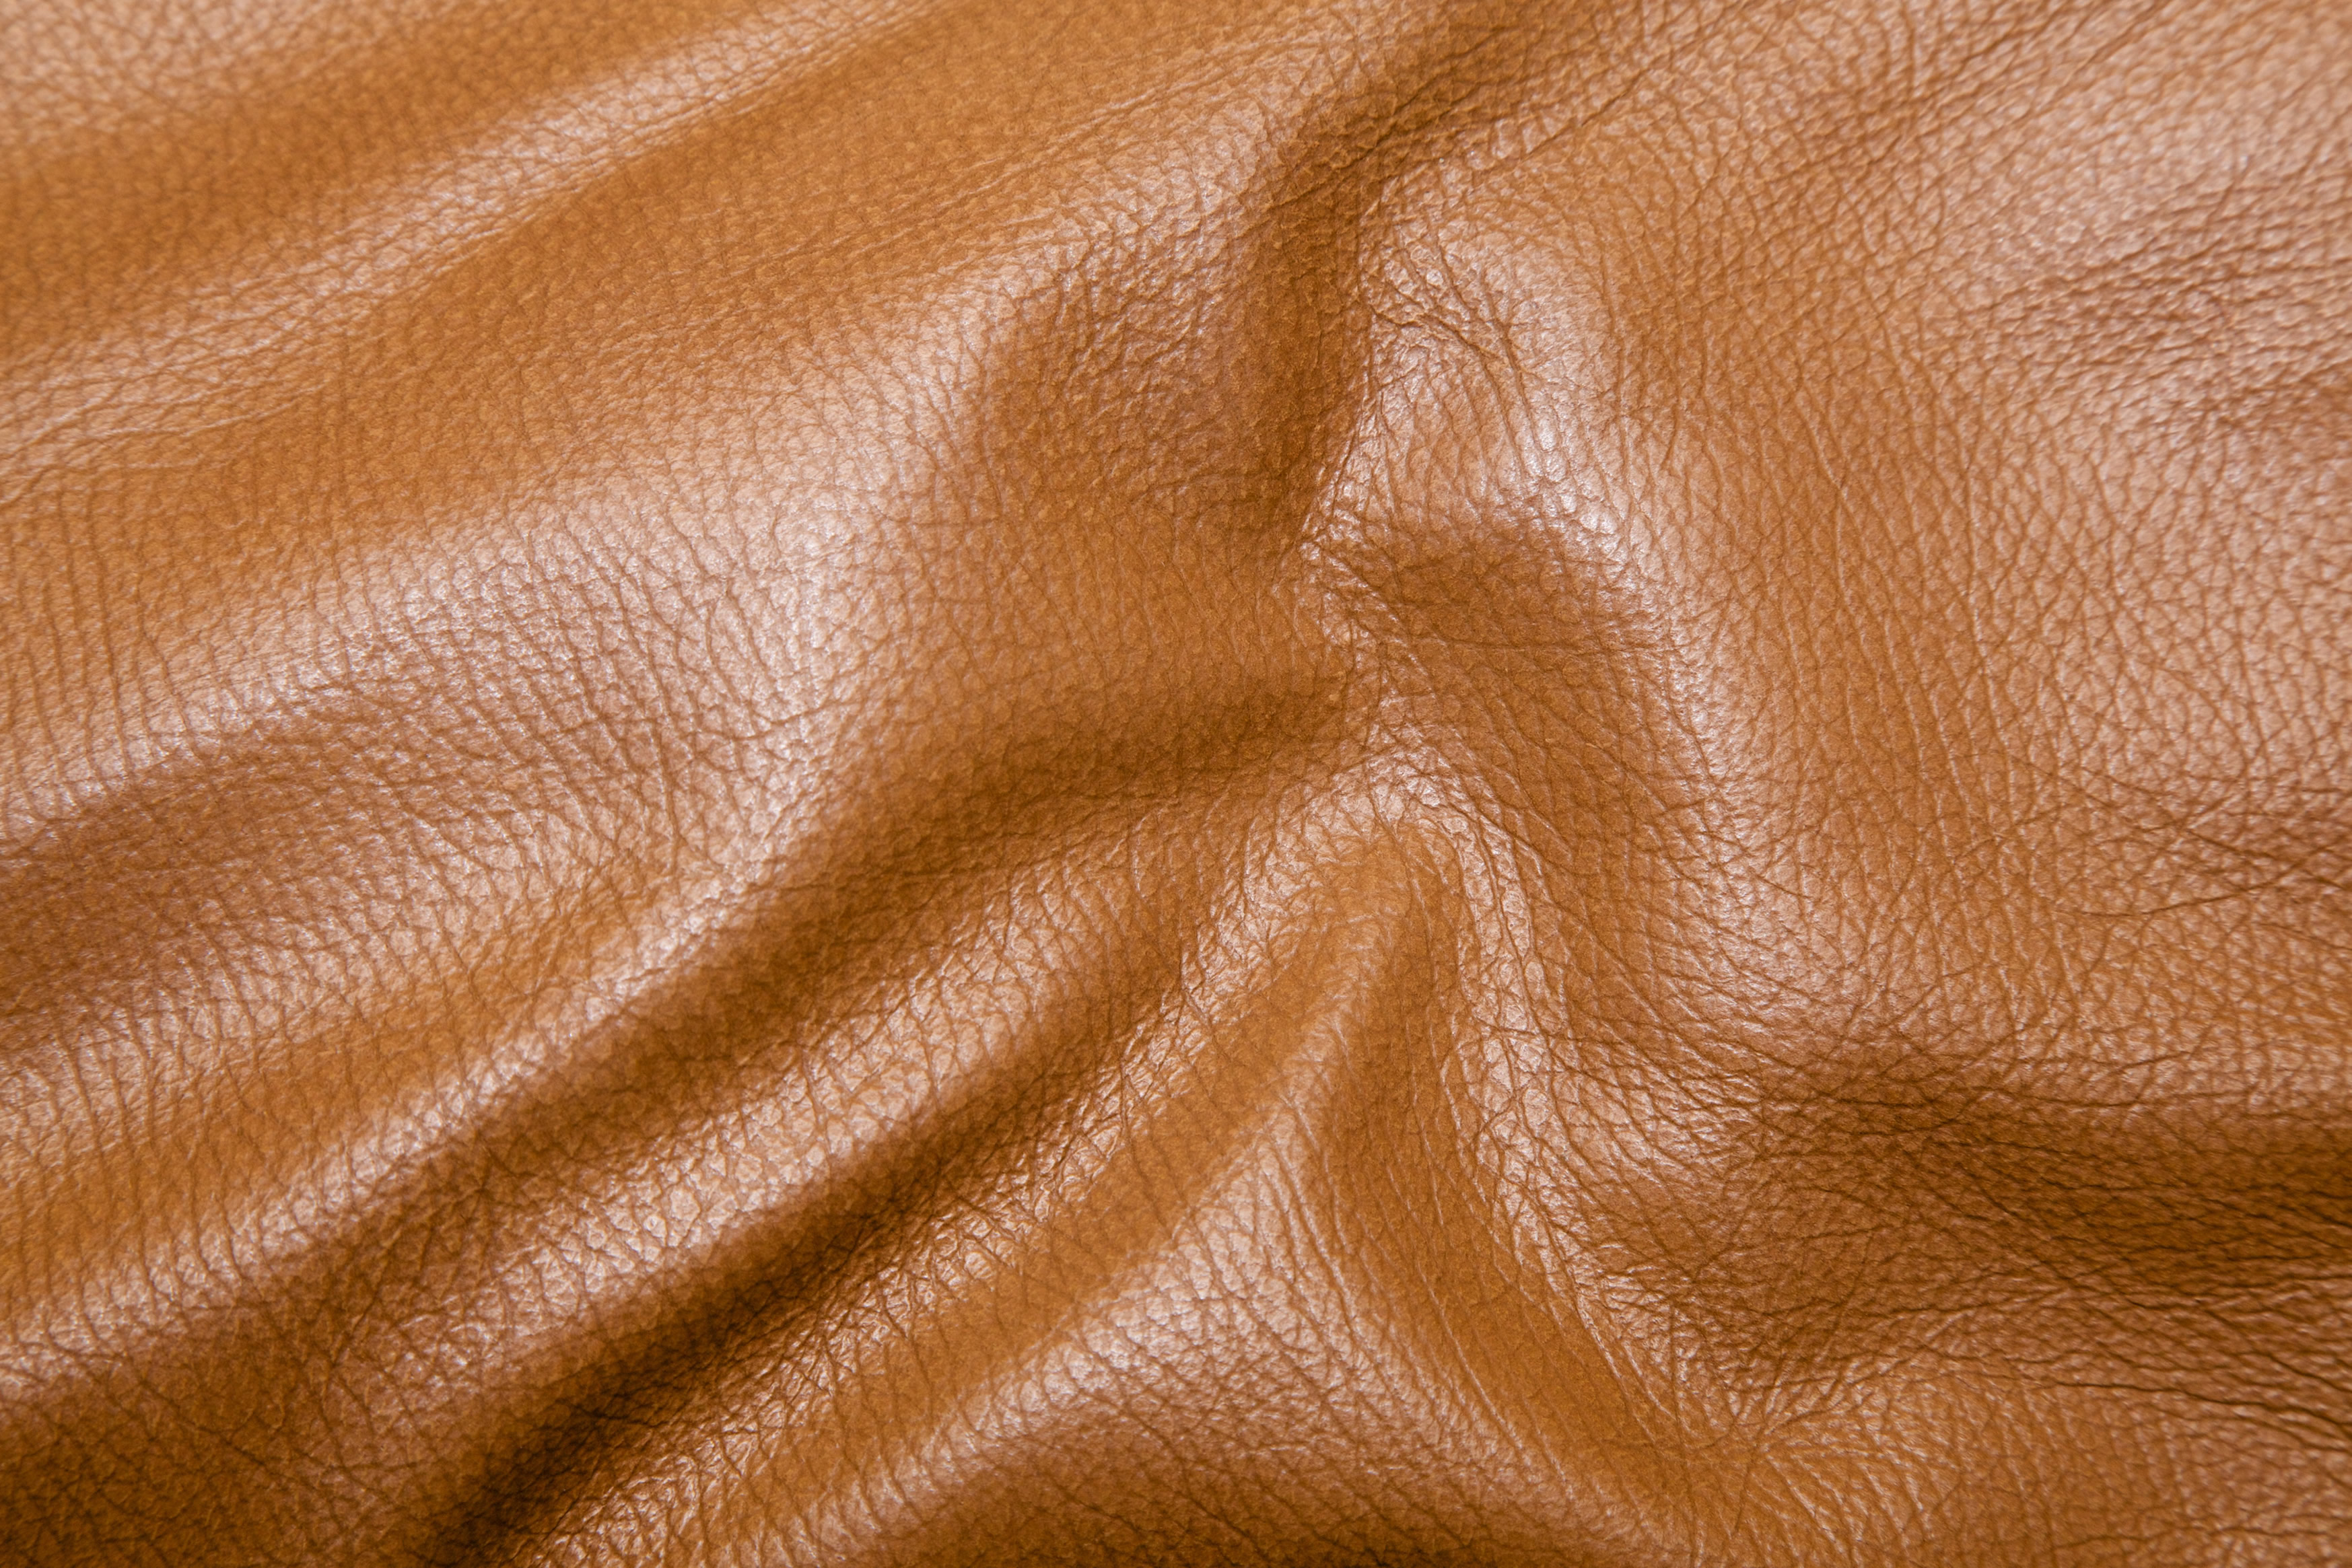 brown leather texture, background, leather background, leather background